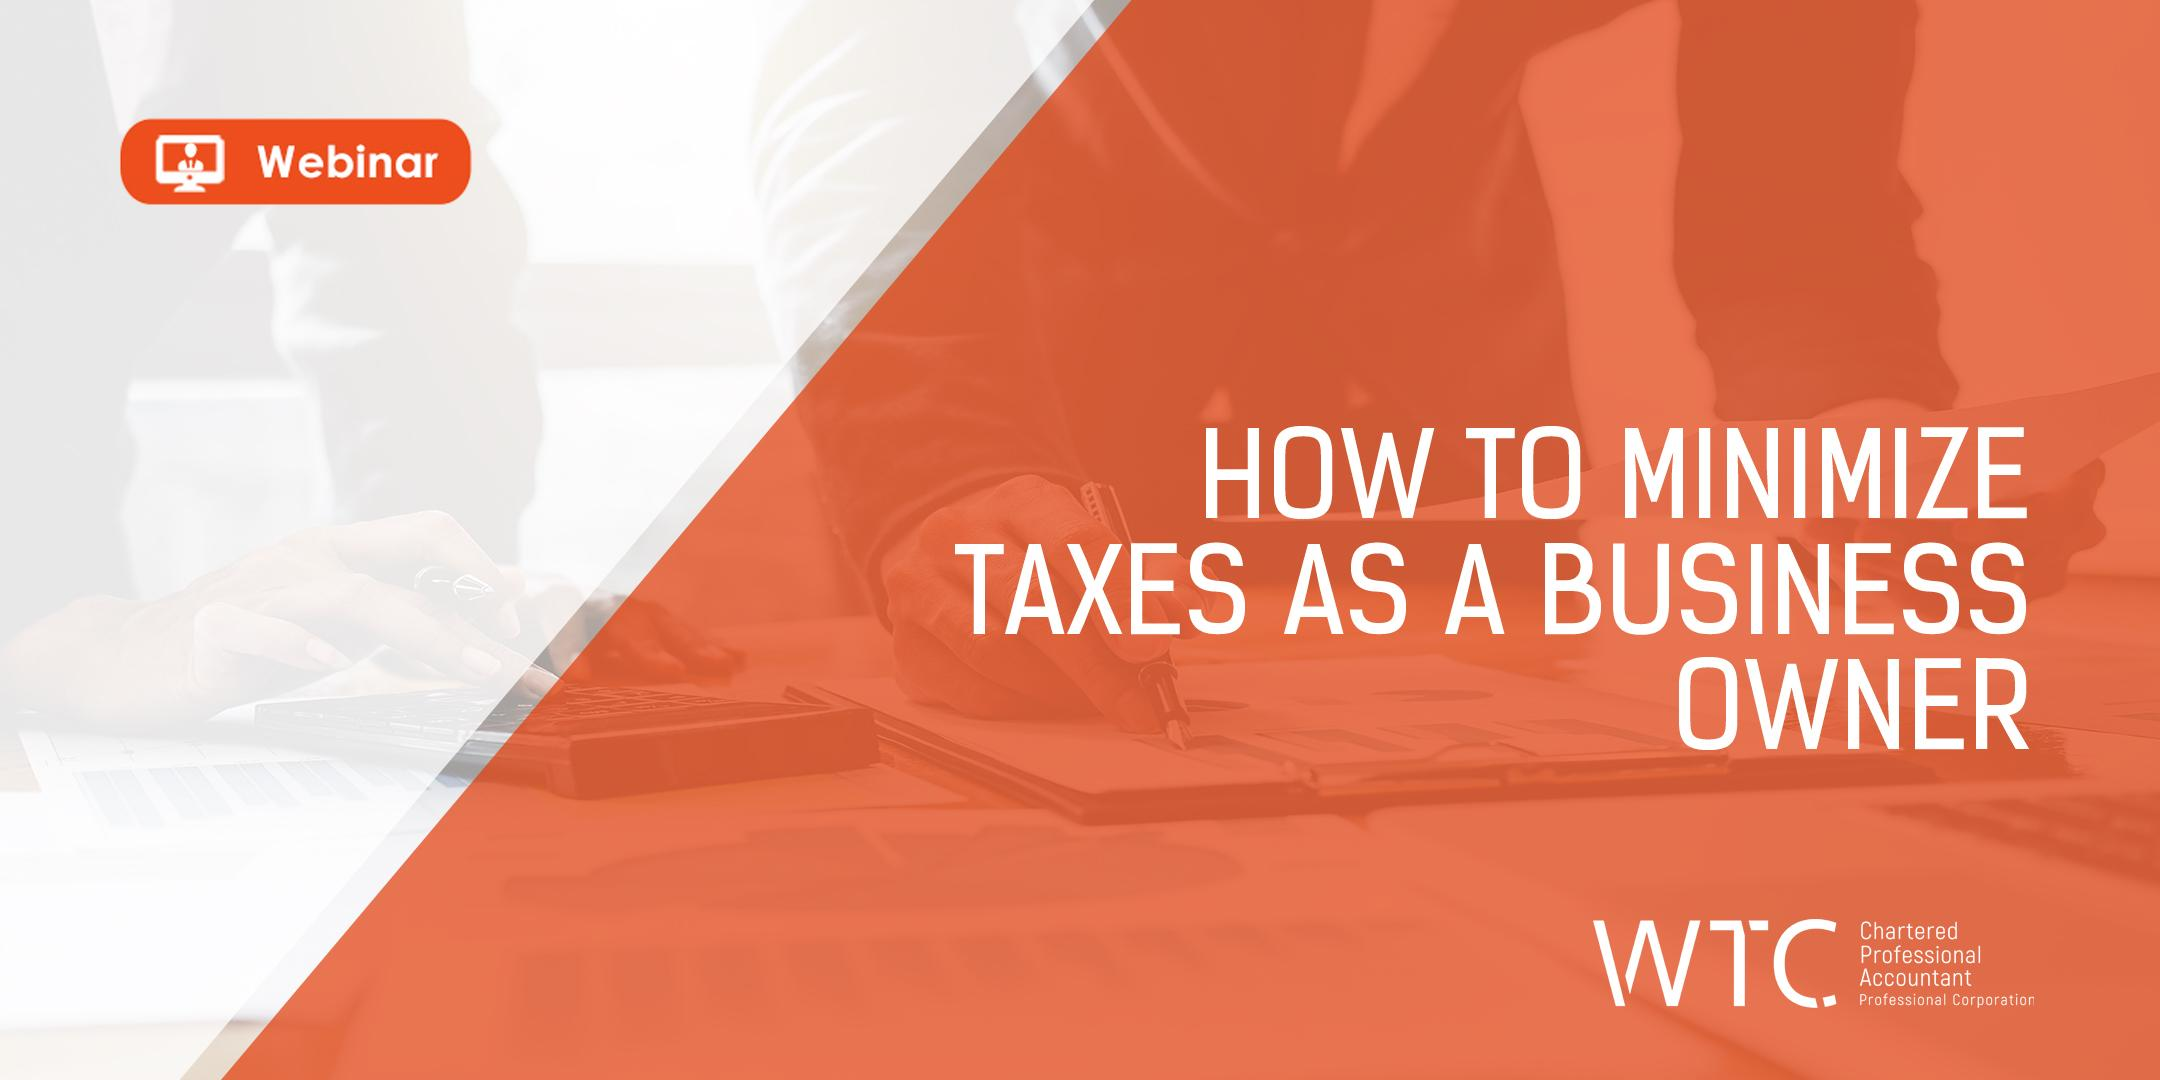 How to Minimize Taxes as a Business Owner